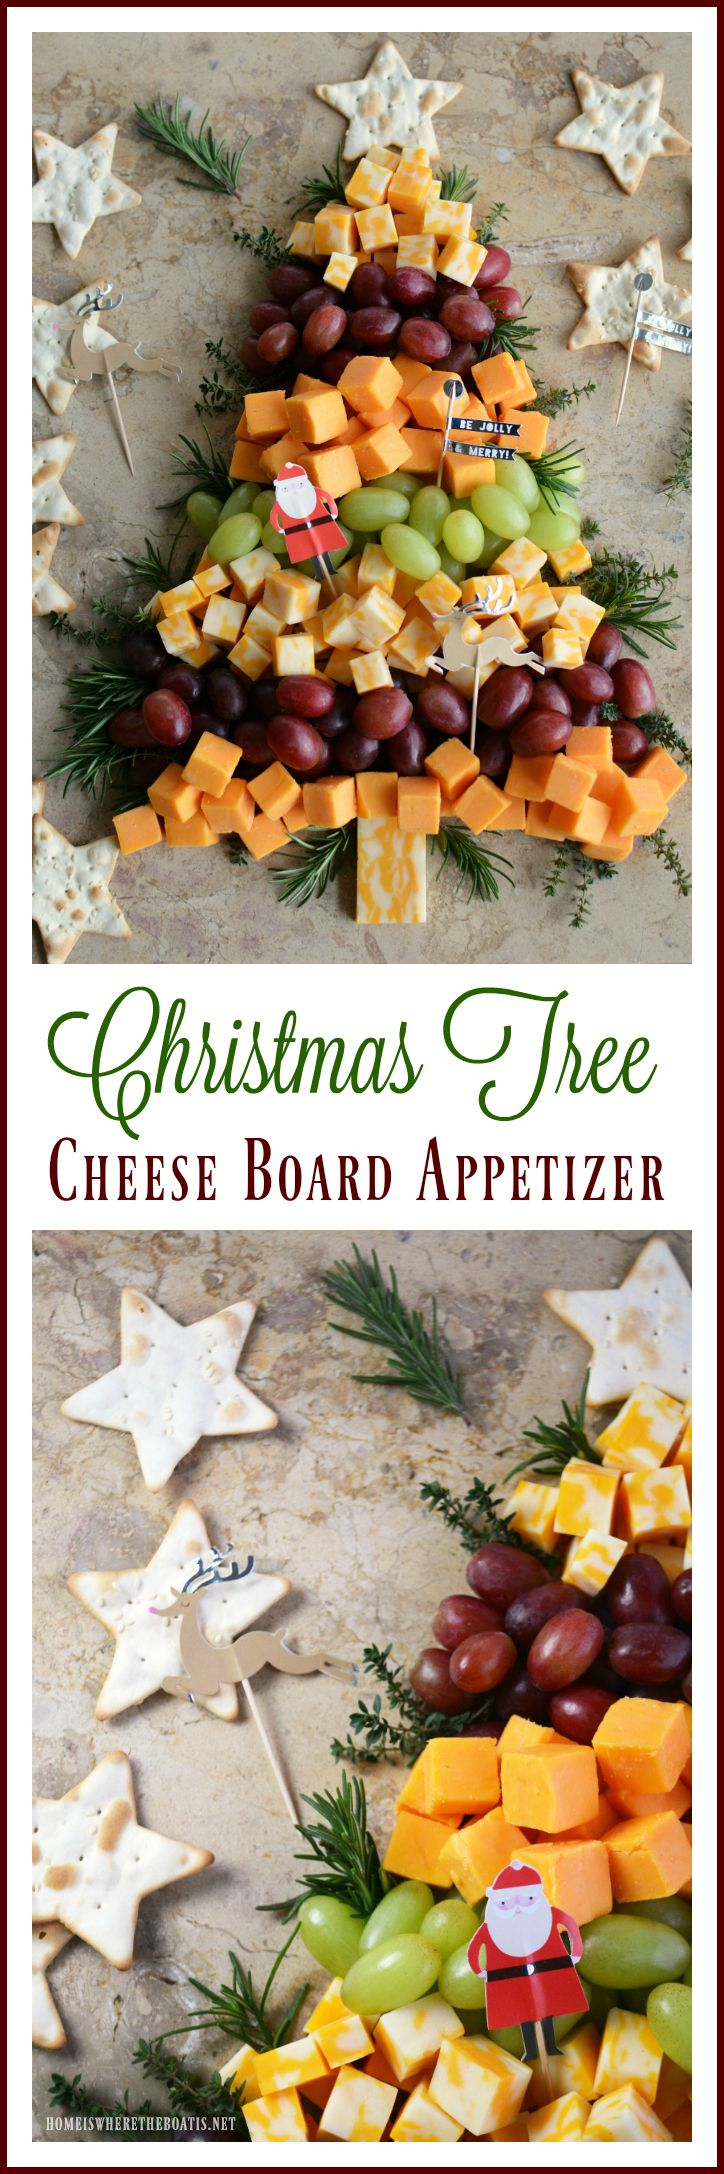 Christmas Party Recipe Ideas Part - 39: Easy Holiday Appetizer: Christmas Tree Cheese Board |  Homeiswheretheboatis.net #party | Appetizers | Pinterest | Christmas Tree,  Cheese And Holidays